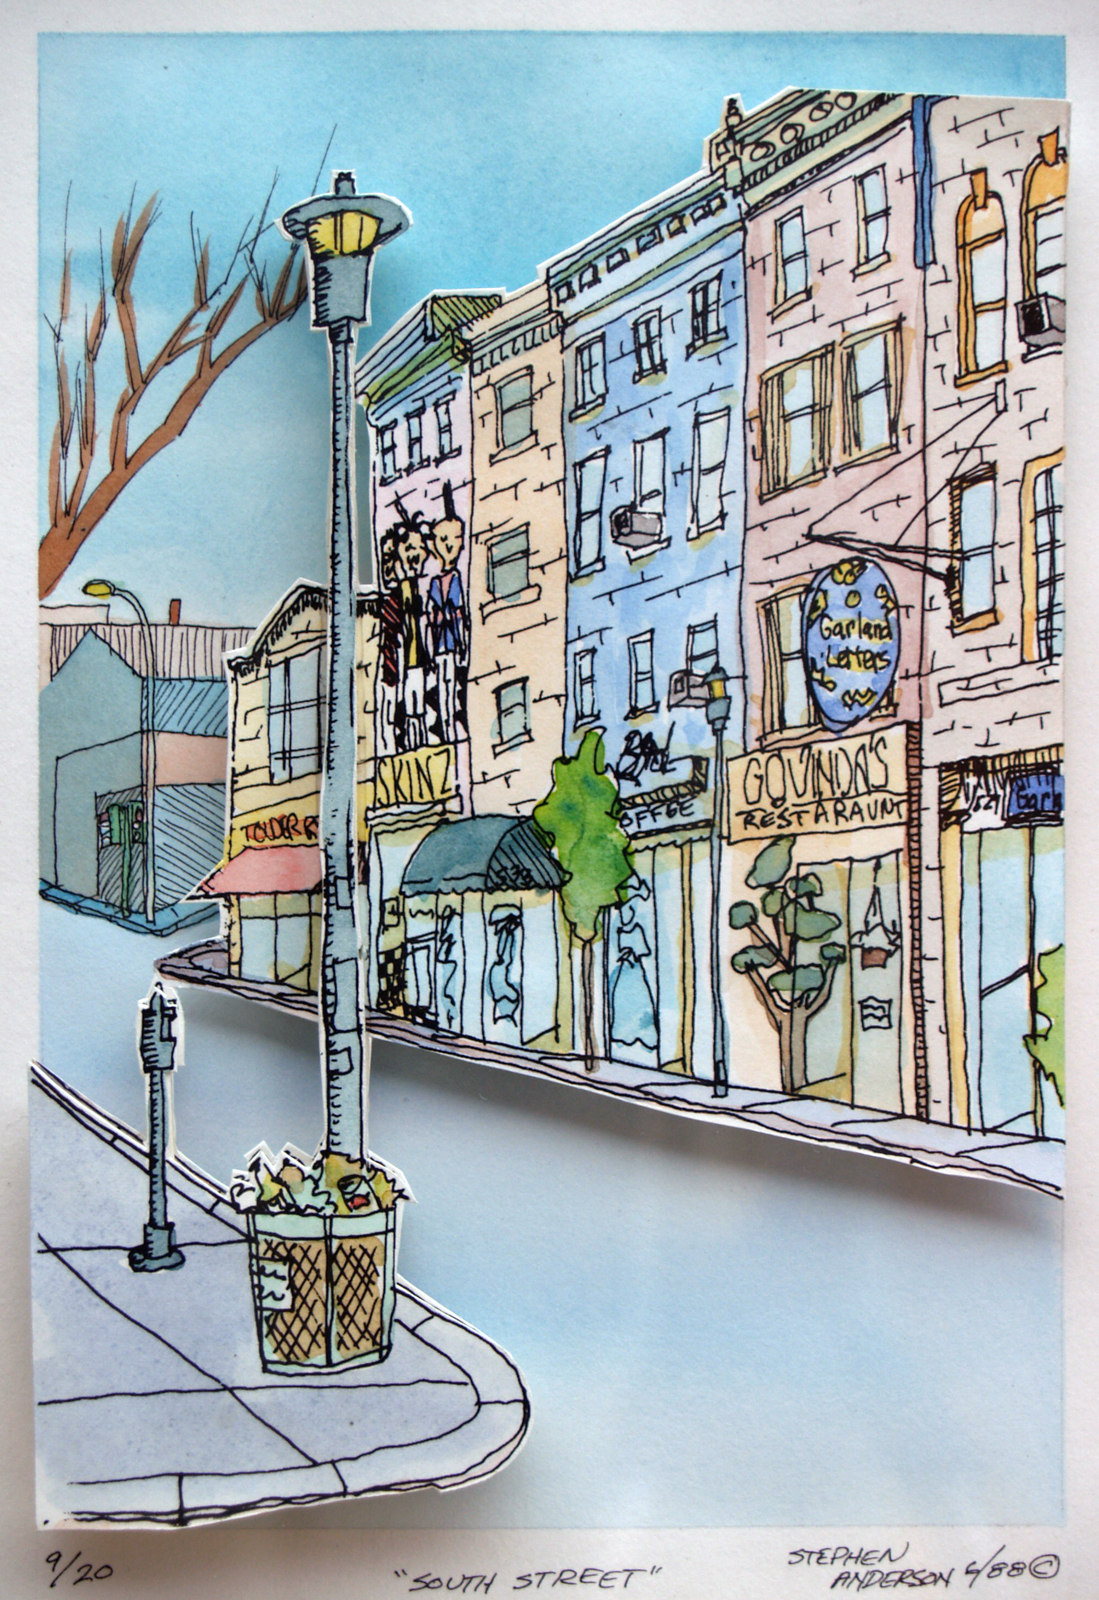 South Street I by Stephen P. Anderson